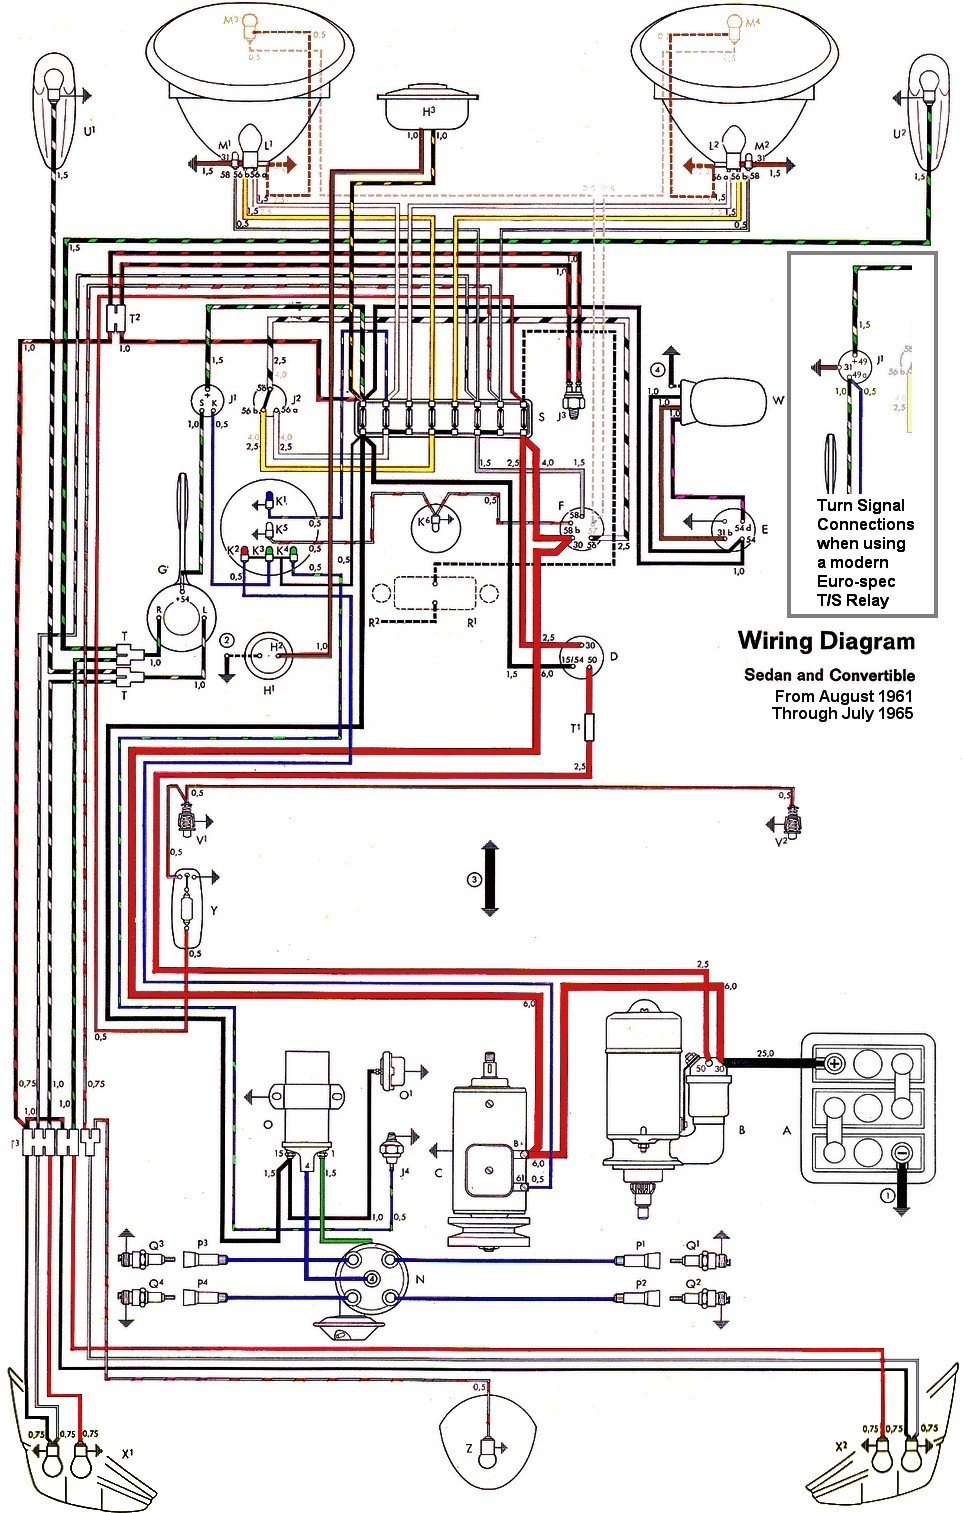 Type 1 Wiring Diagrams 1973 Chevy Fuse Box